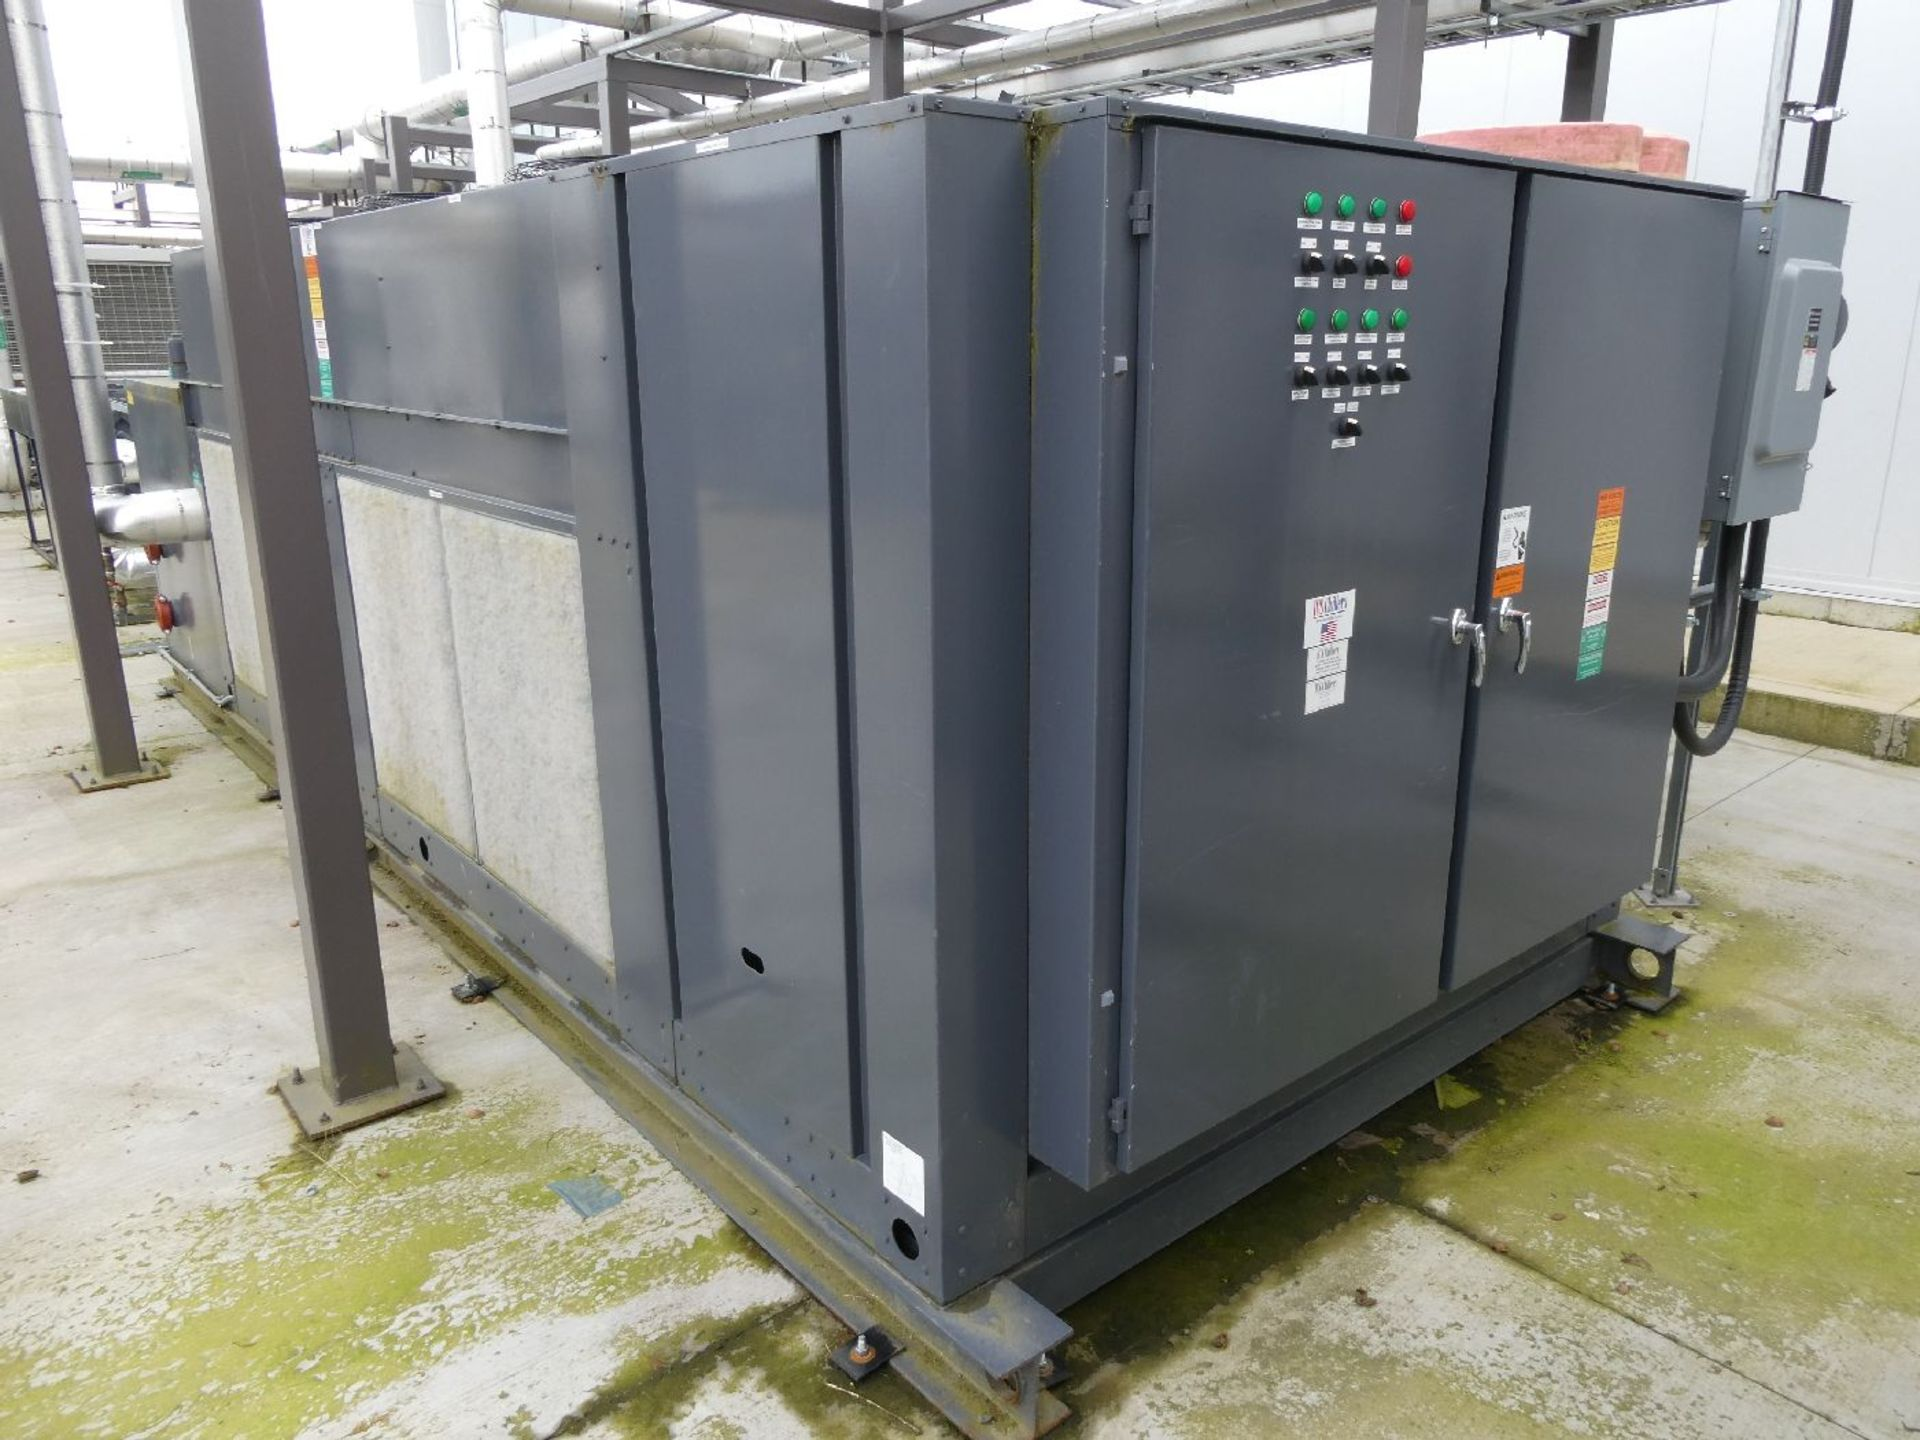 ROTAX Closed Loop Solvent Based Continuous Oil Extraction System - Image 61 of 68